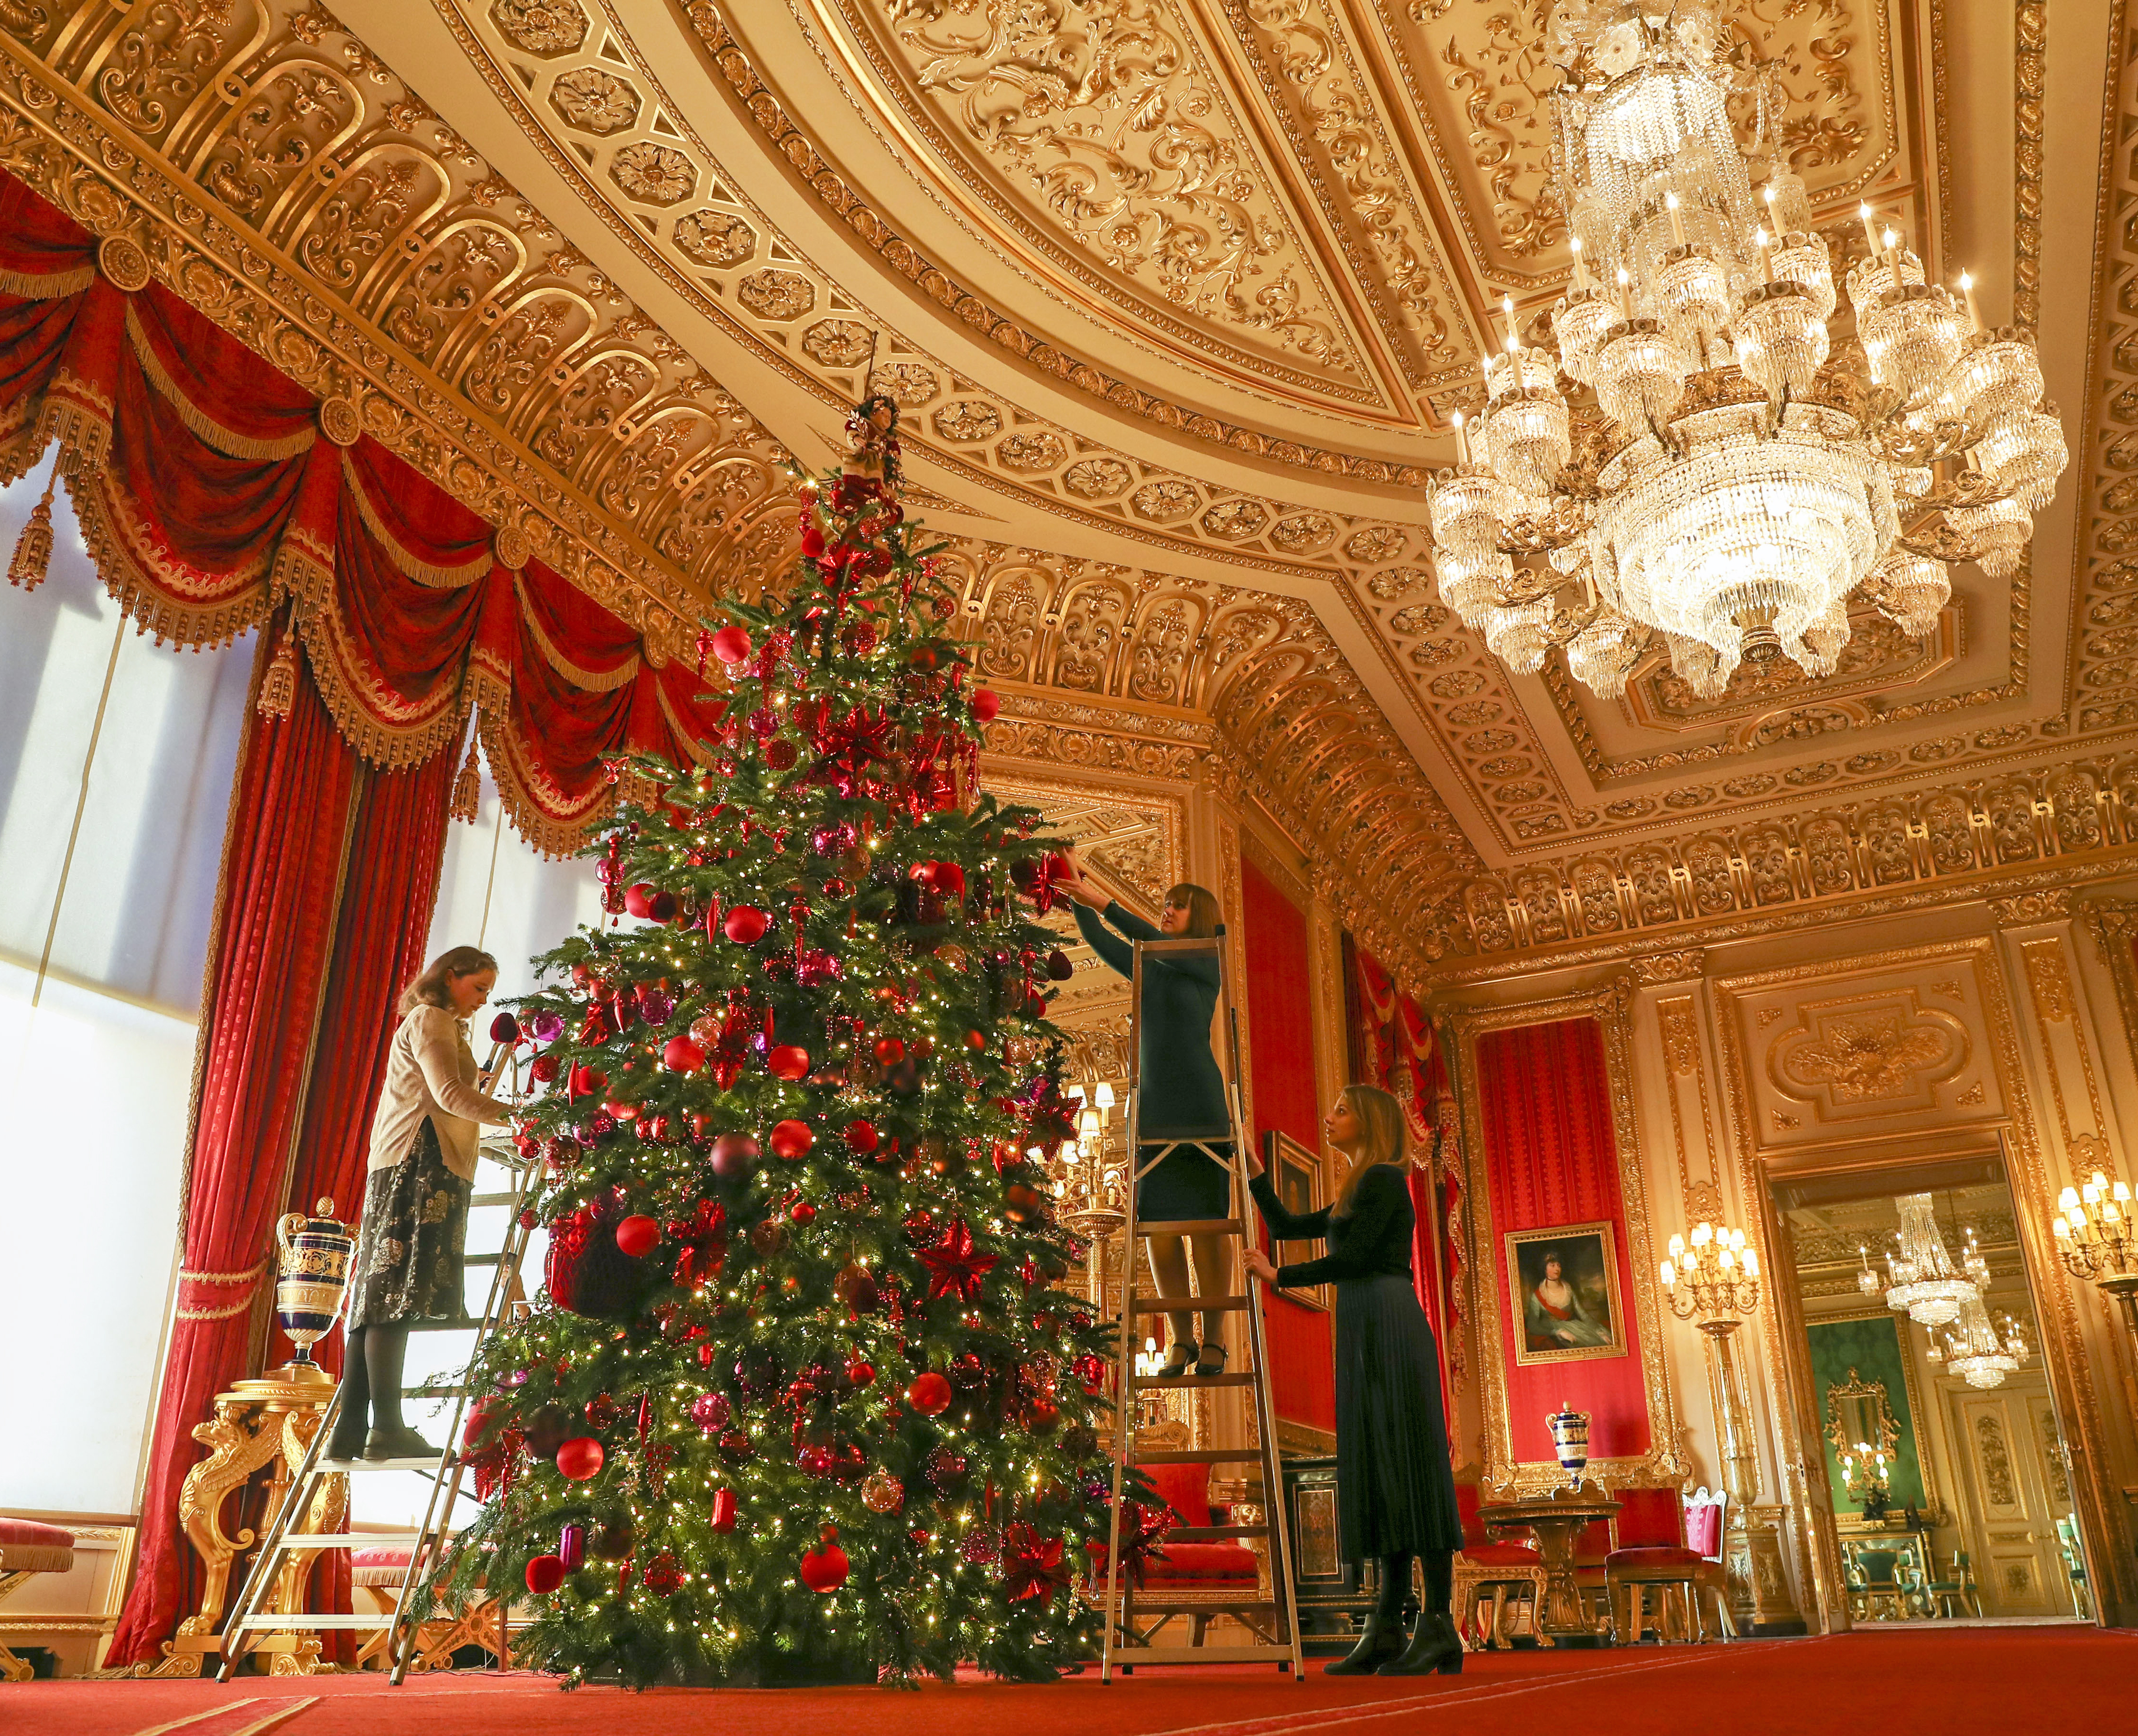 Royal Collection Trust members of staff put the finishing touches to a 15ft Christmas tree in the Crimson Drawing Room at Windsor Castle, Berkshire. (Photo by Steve Parsons/PA Images via Getty Images)